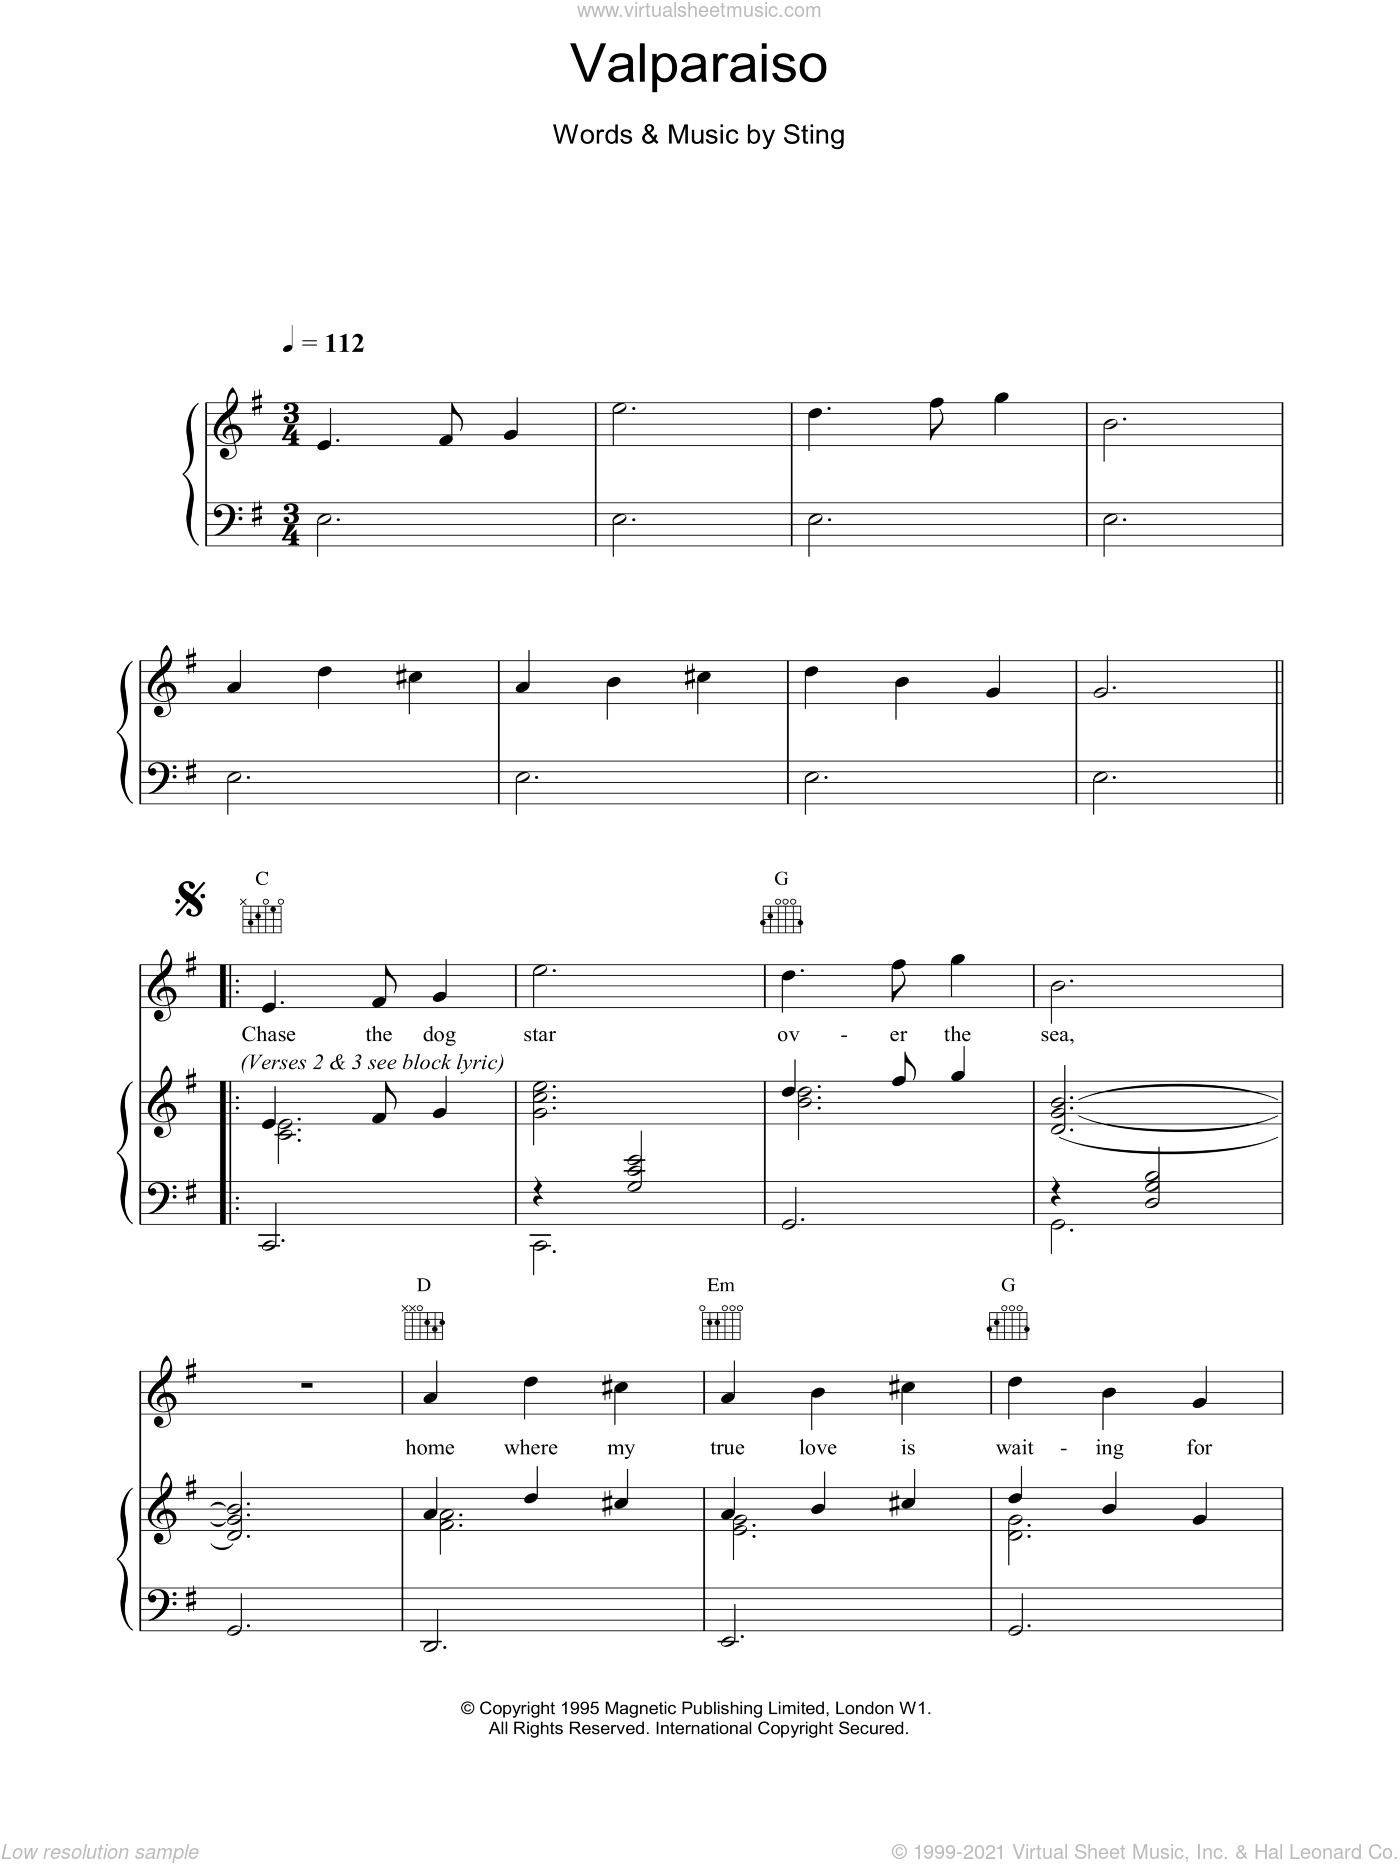 Valparaiso sheet music for voice, piano or guitar by Sting. Score Image Preview.